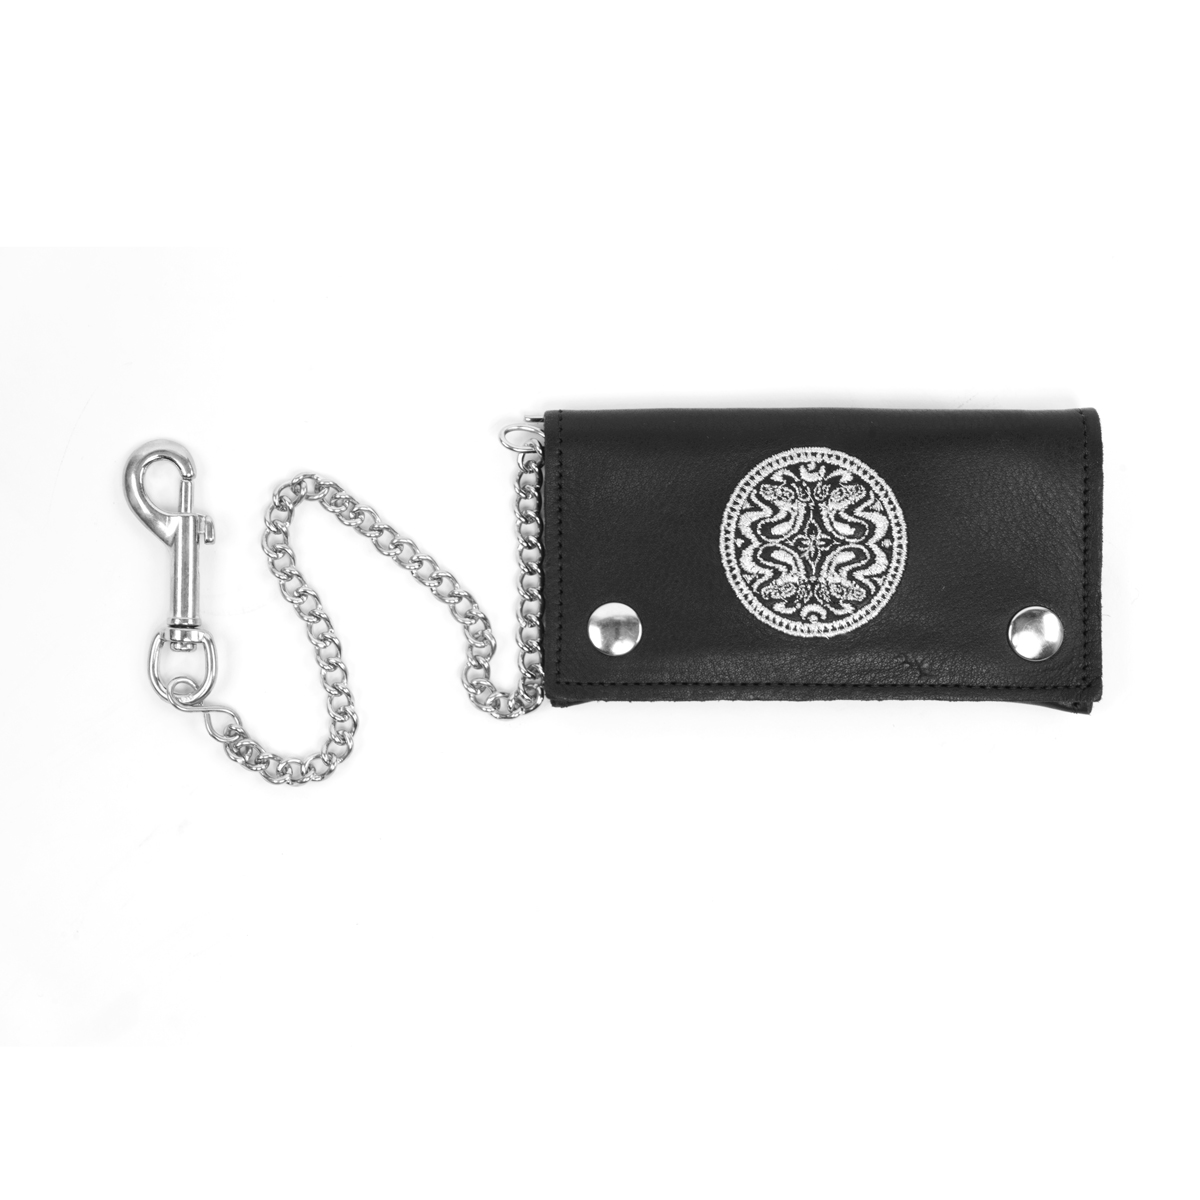 Dose Leather Wallet Chain